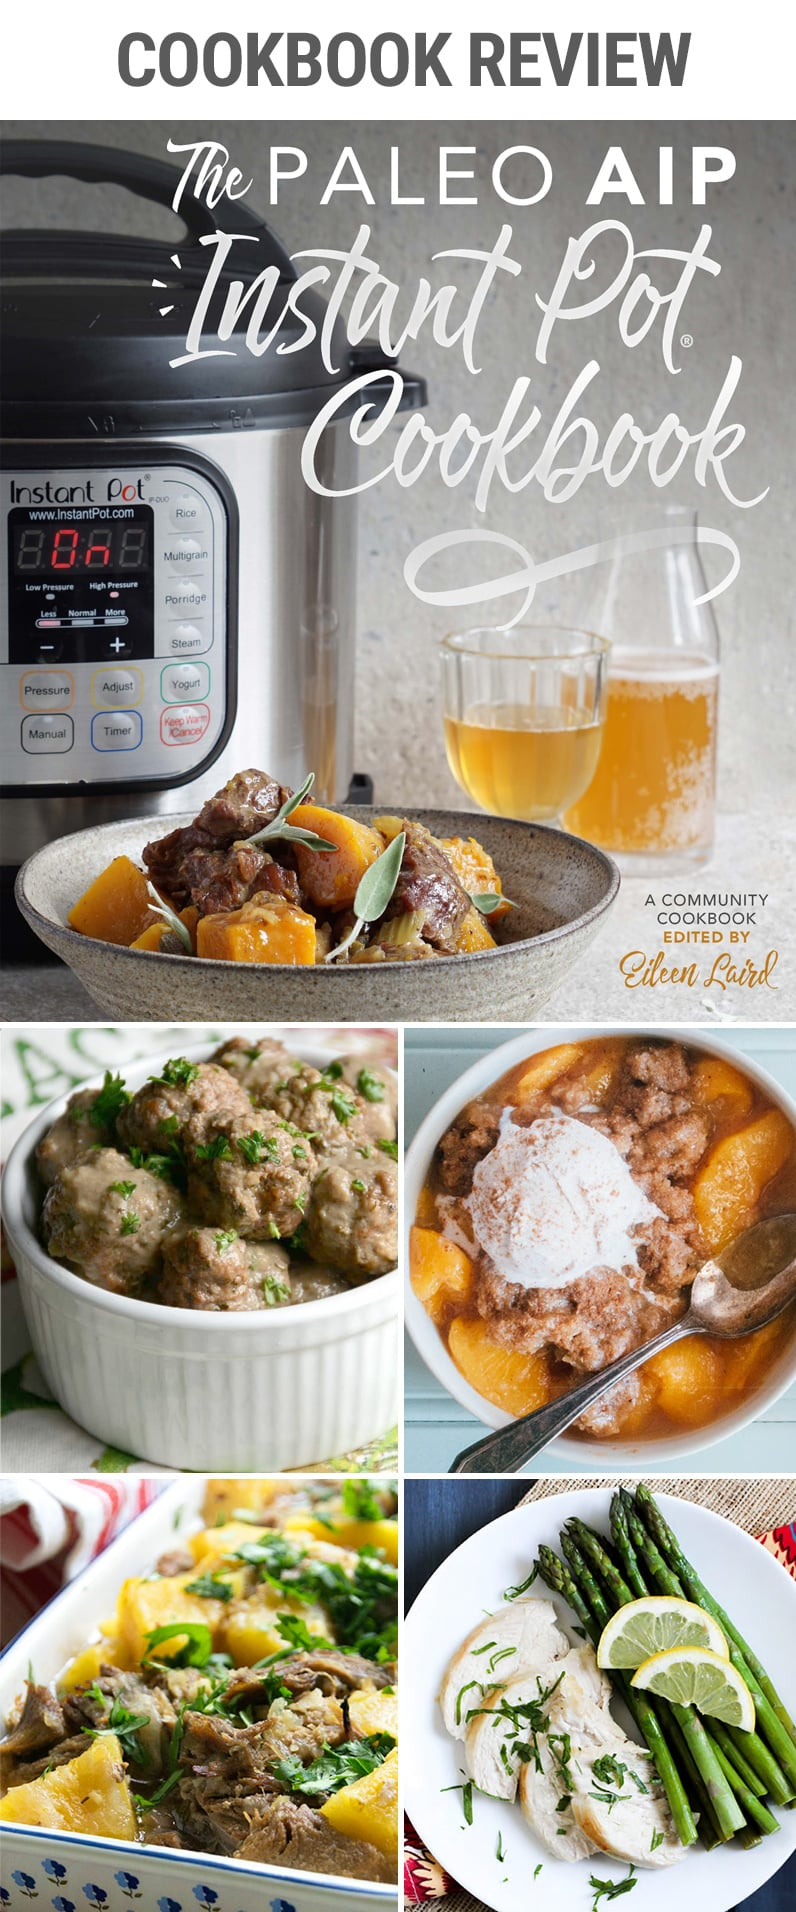 The Paleo AIP Instant Pot Cookbook - Review & Highlights